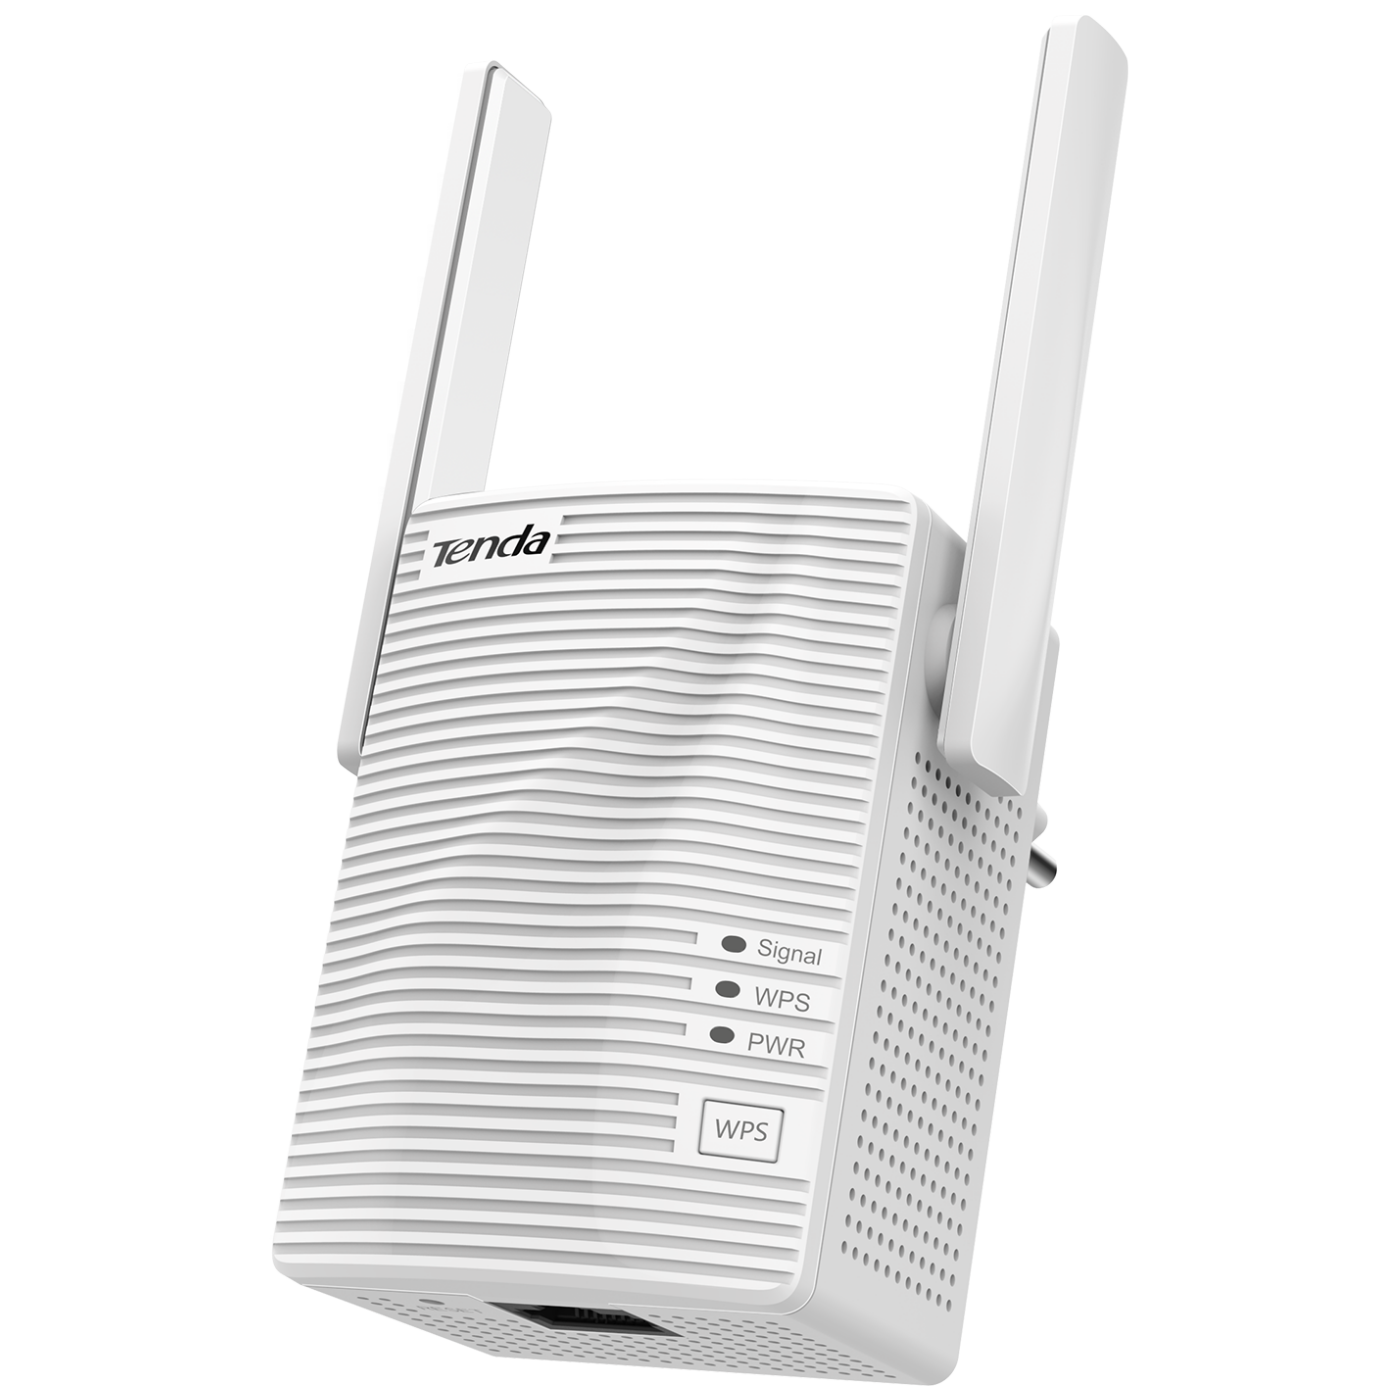 Mini Repetidor wifi A301 Tenda